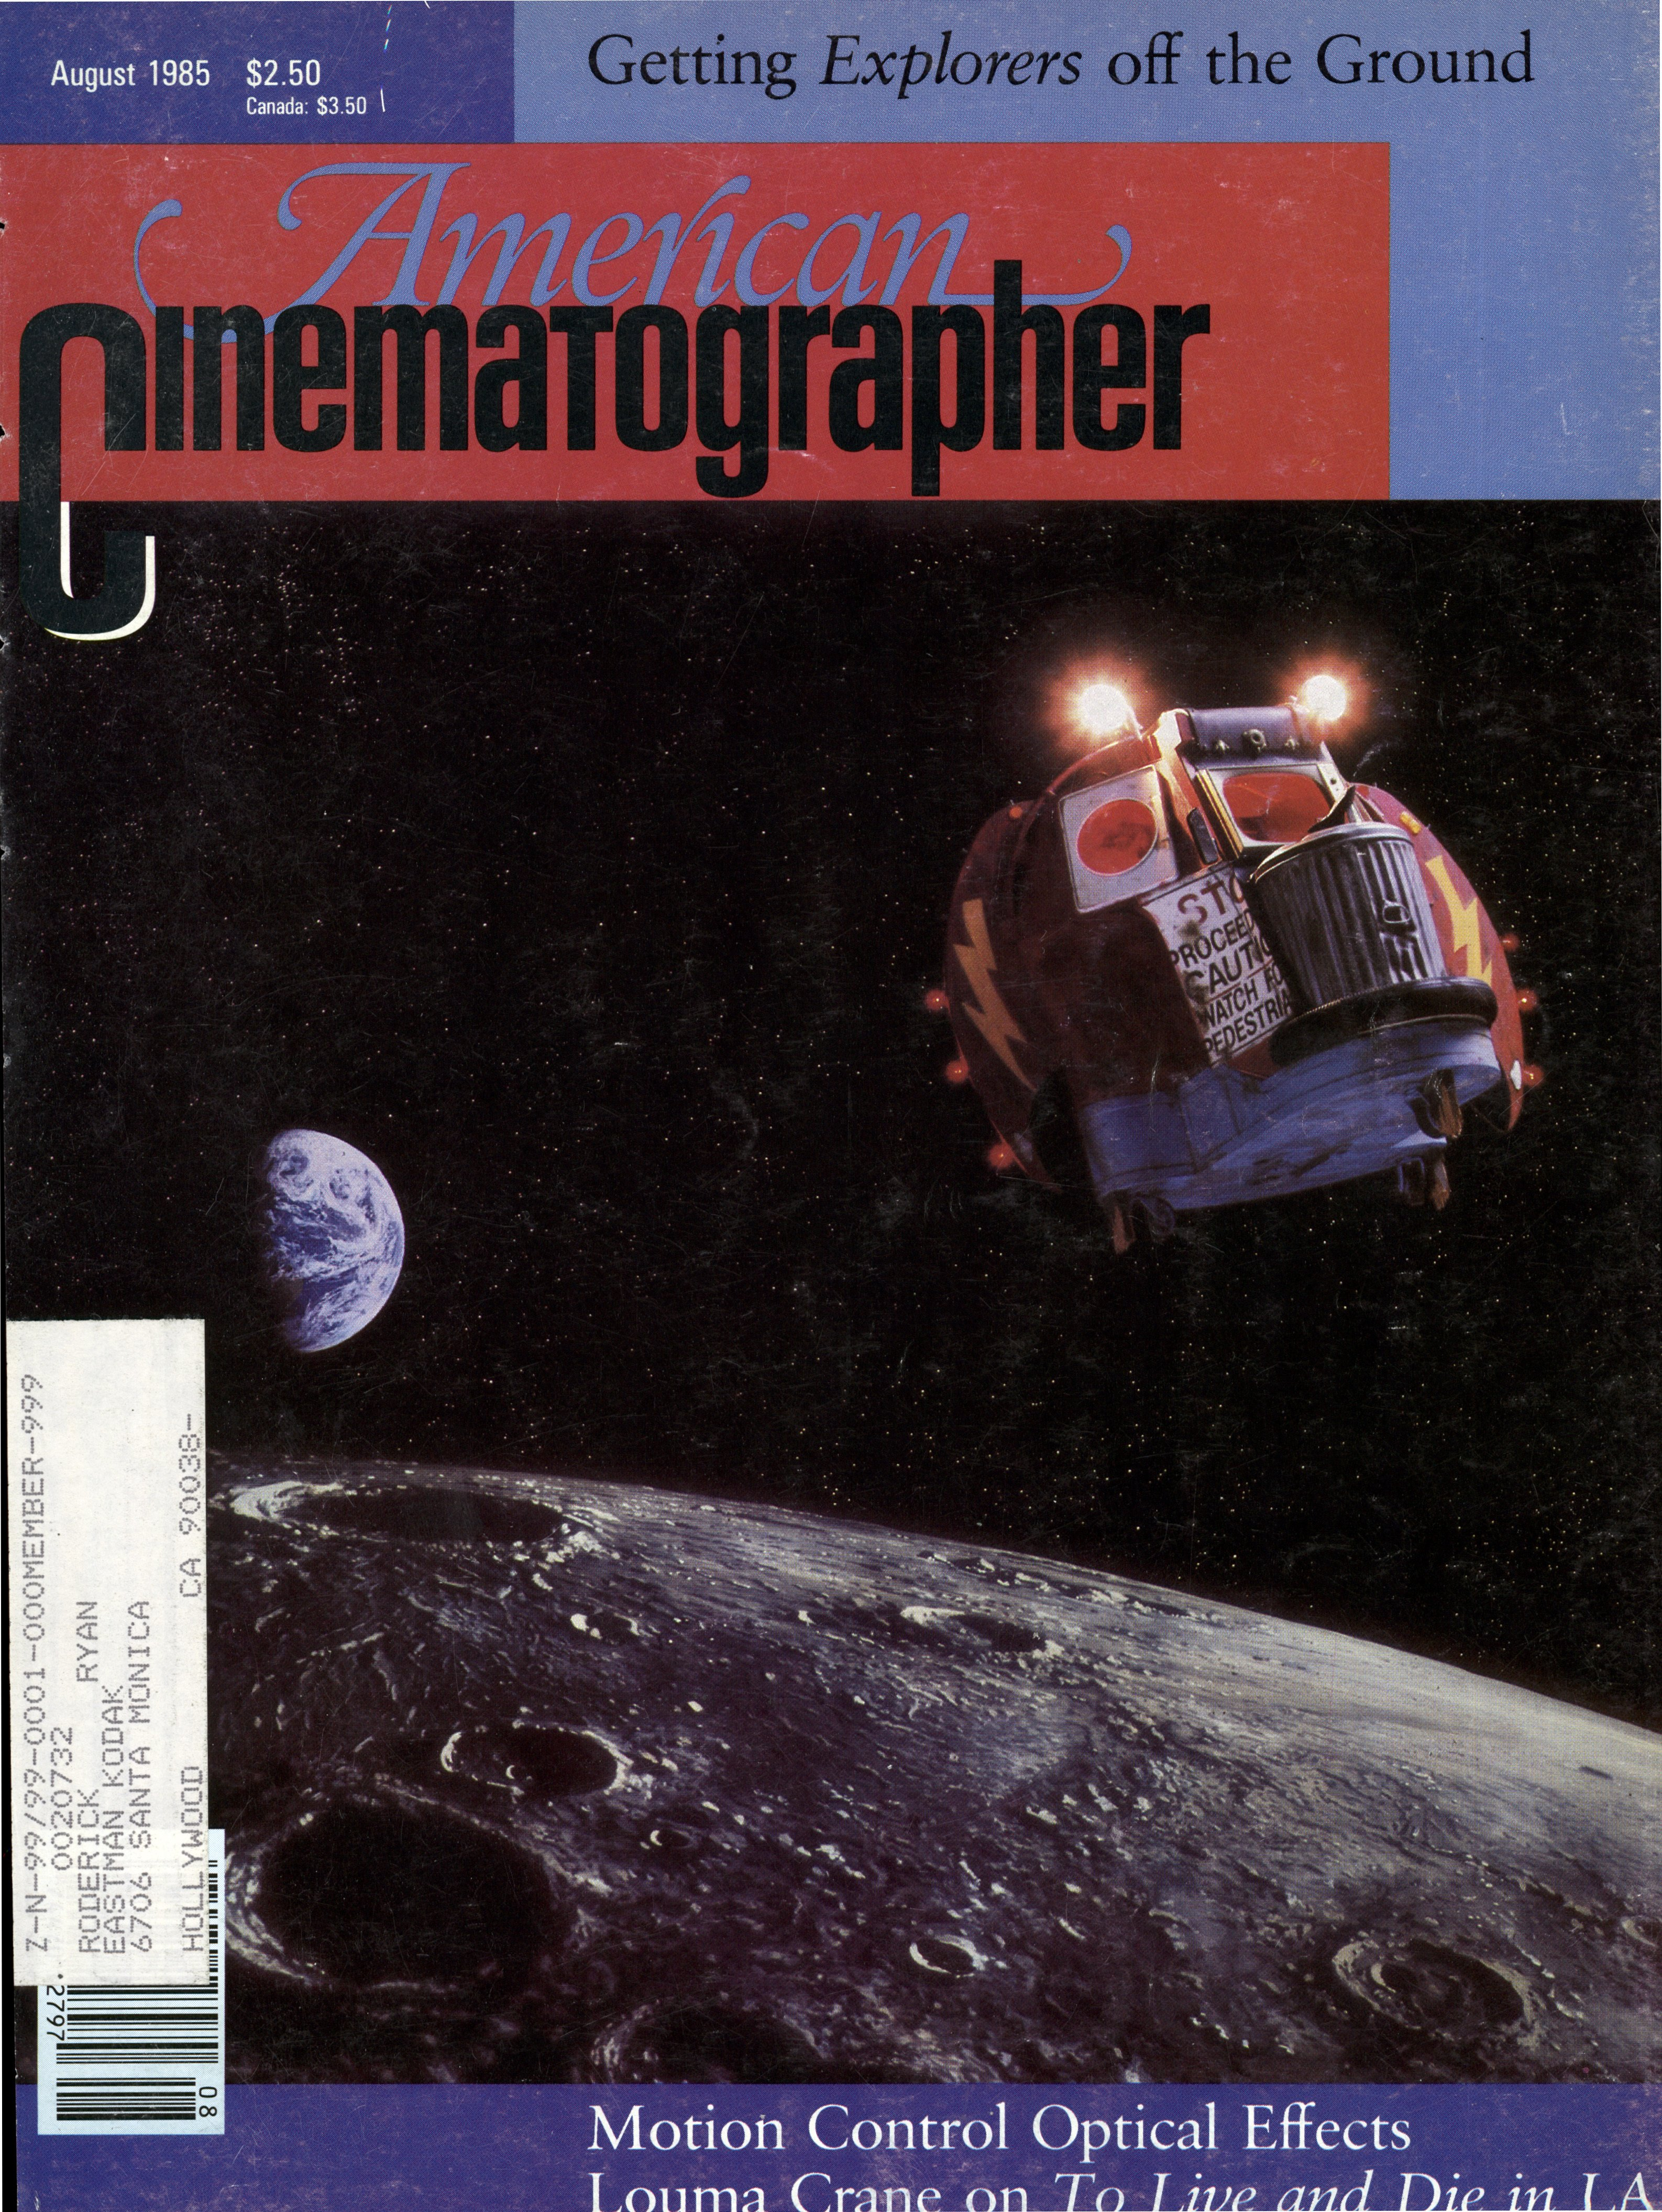 August 1985